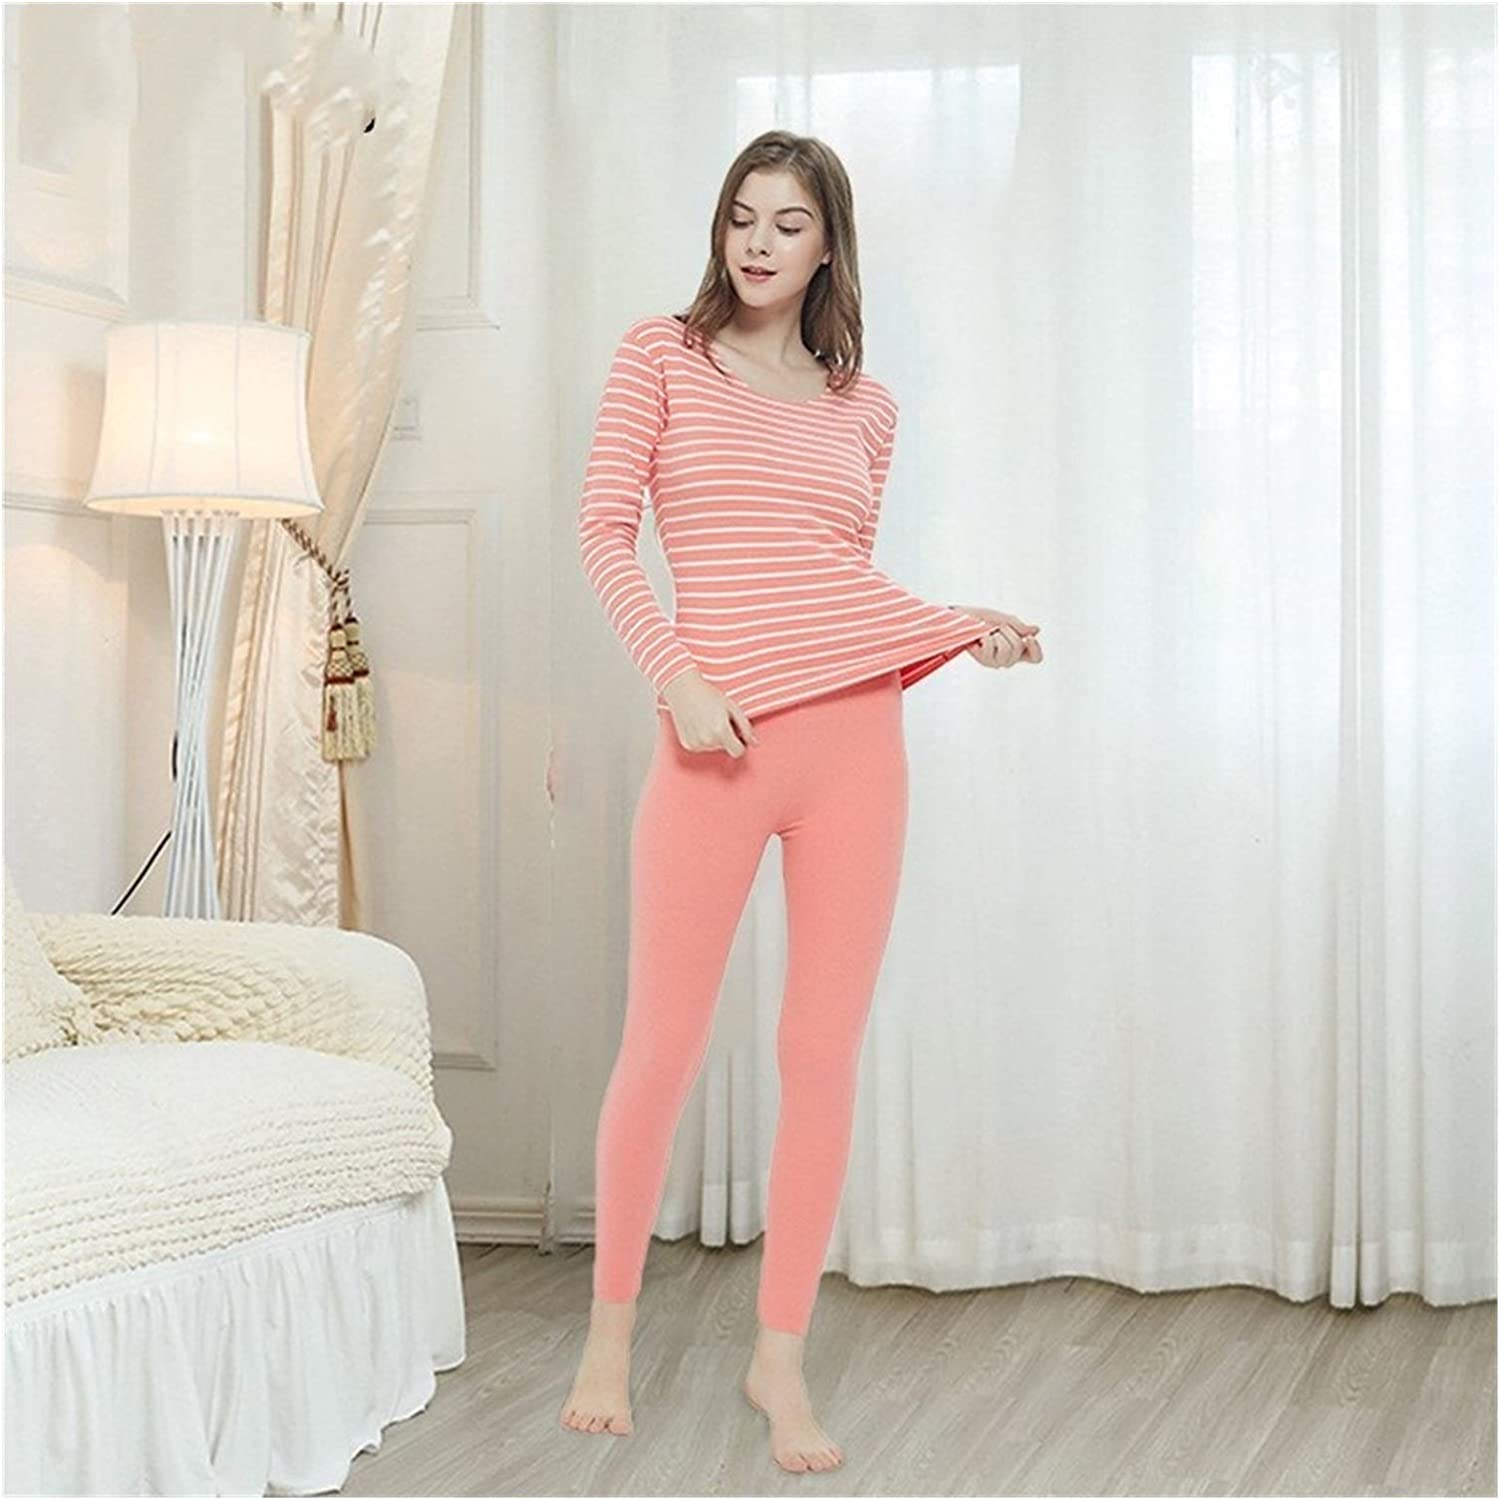 Glqwe No Trace Autumn Winter Plus Size 7XL Long Johns for Women Stripe Fever Thermal Underwear Women's Warm Sets Tops and Pants (Color : Beige, Size : XX-Large)